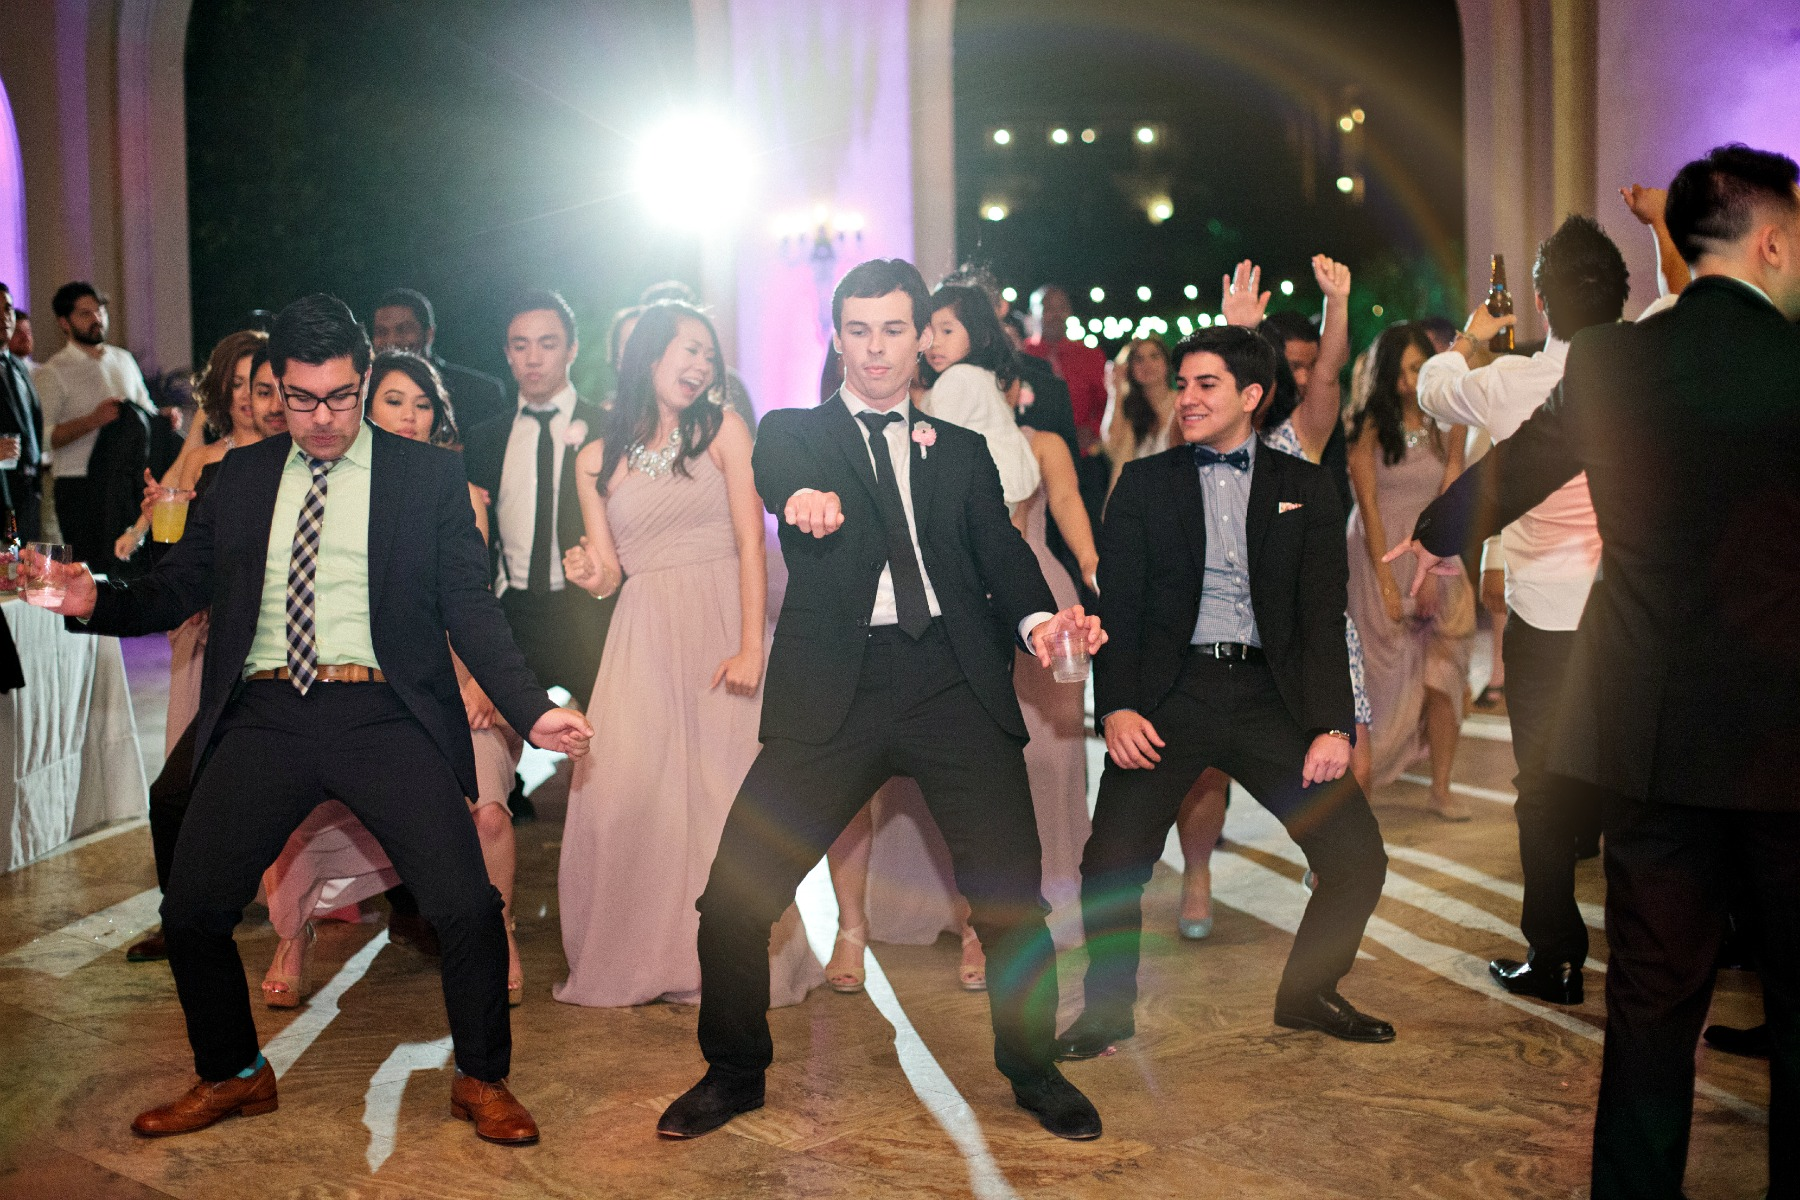 wedding guests dancing on the dance floor at a wedding